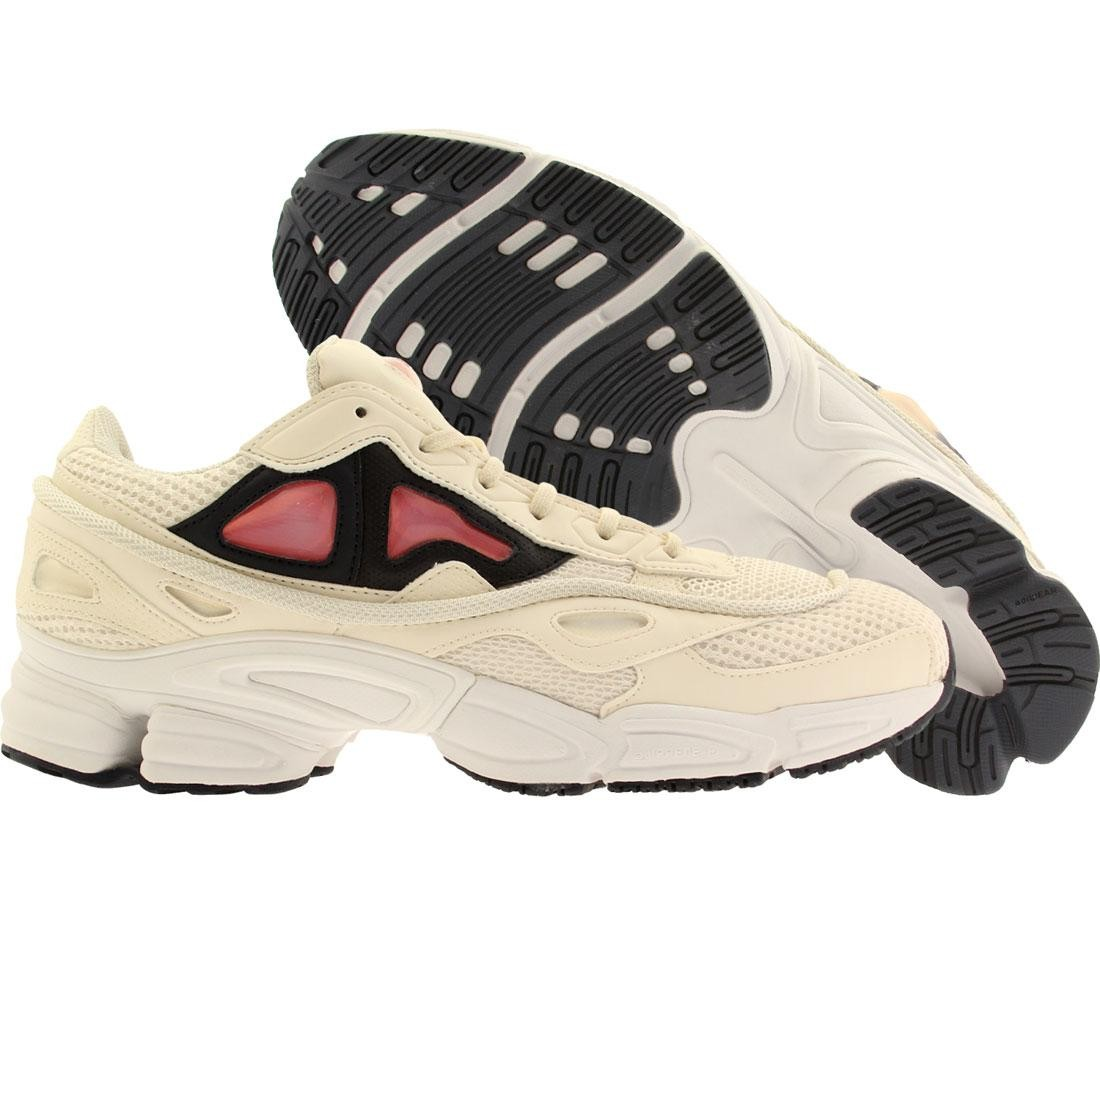 Adidas x Raf Simons Men Ozweego 2 (white / chalk white / bold orange / navy)